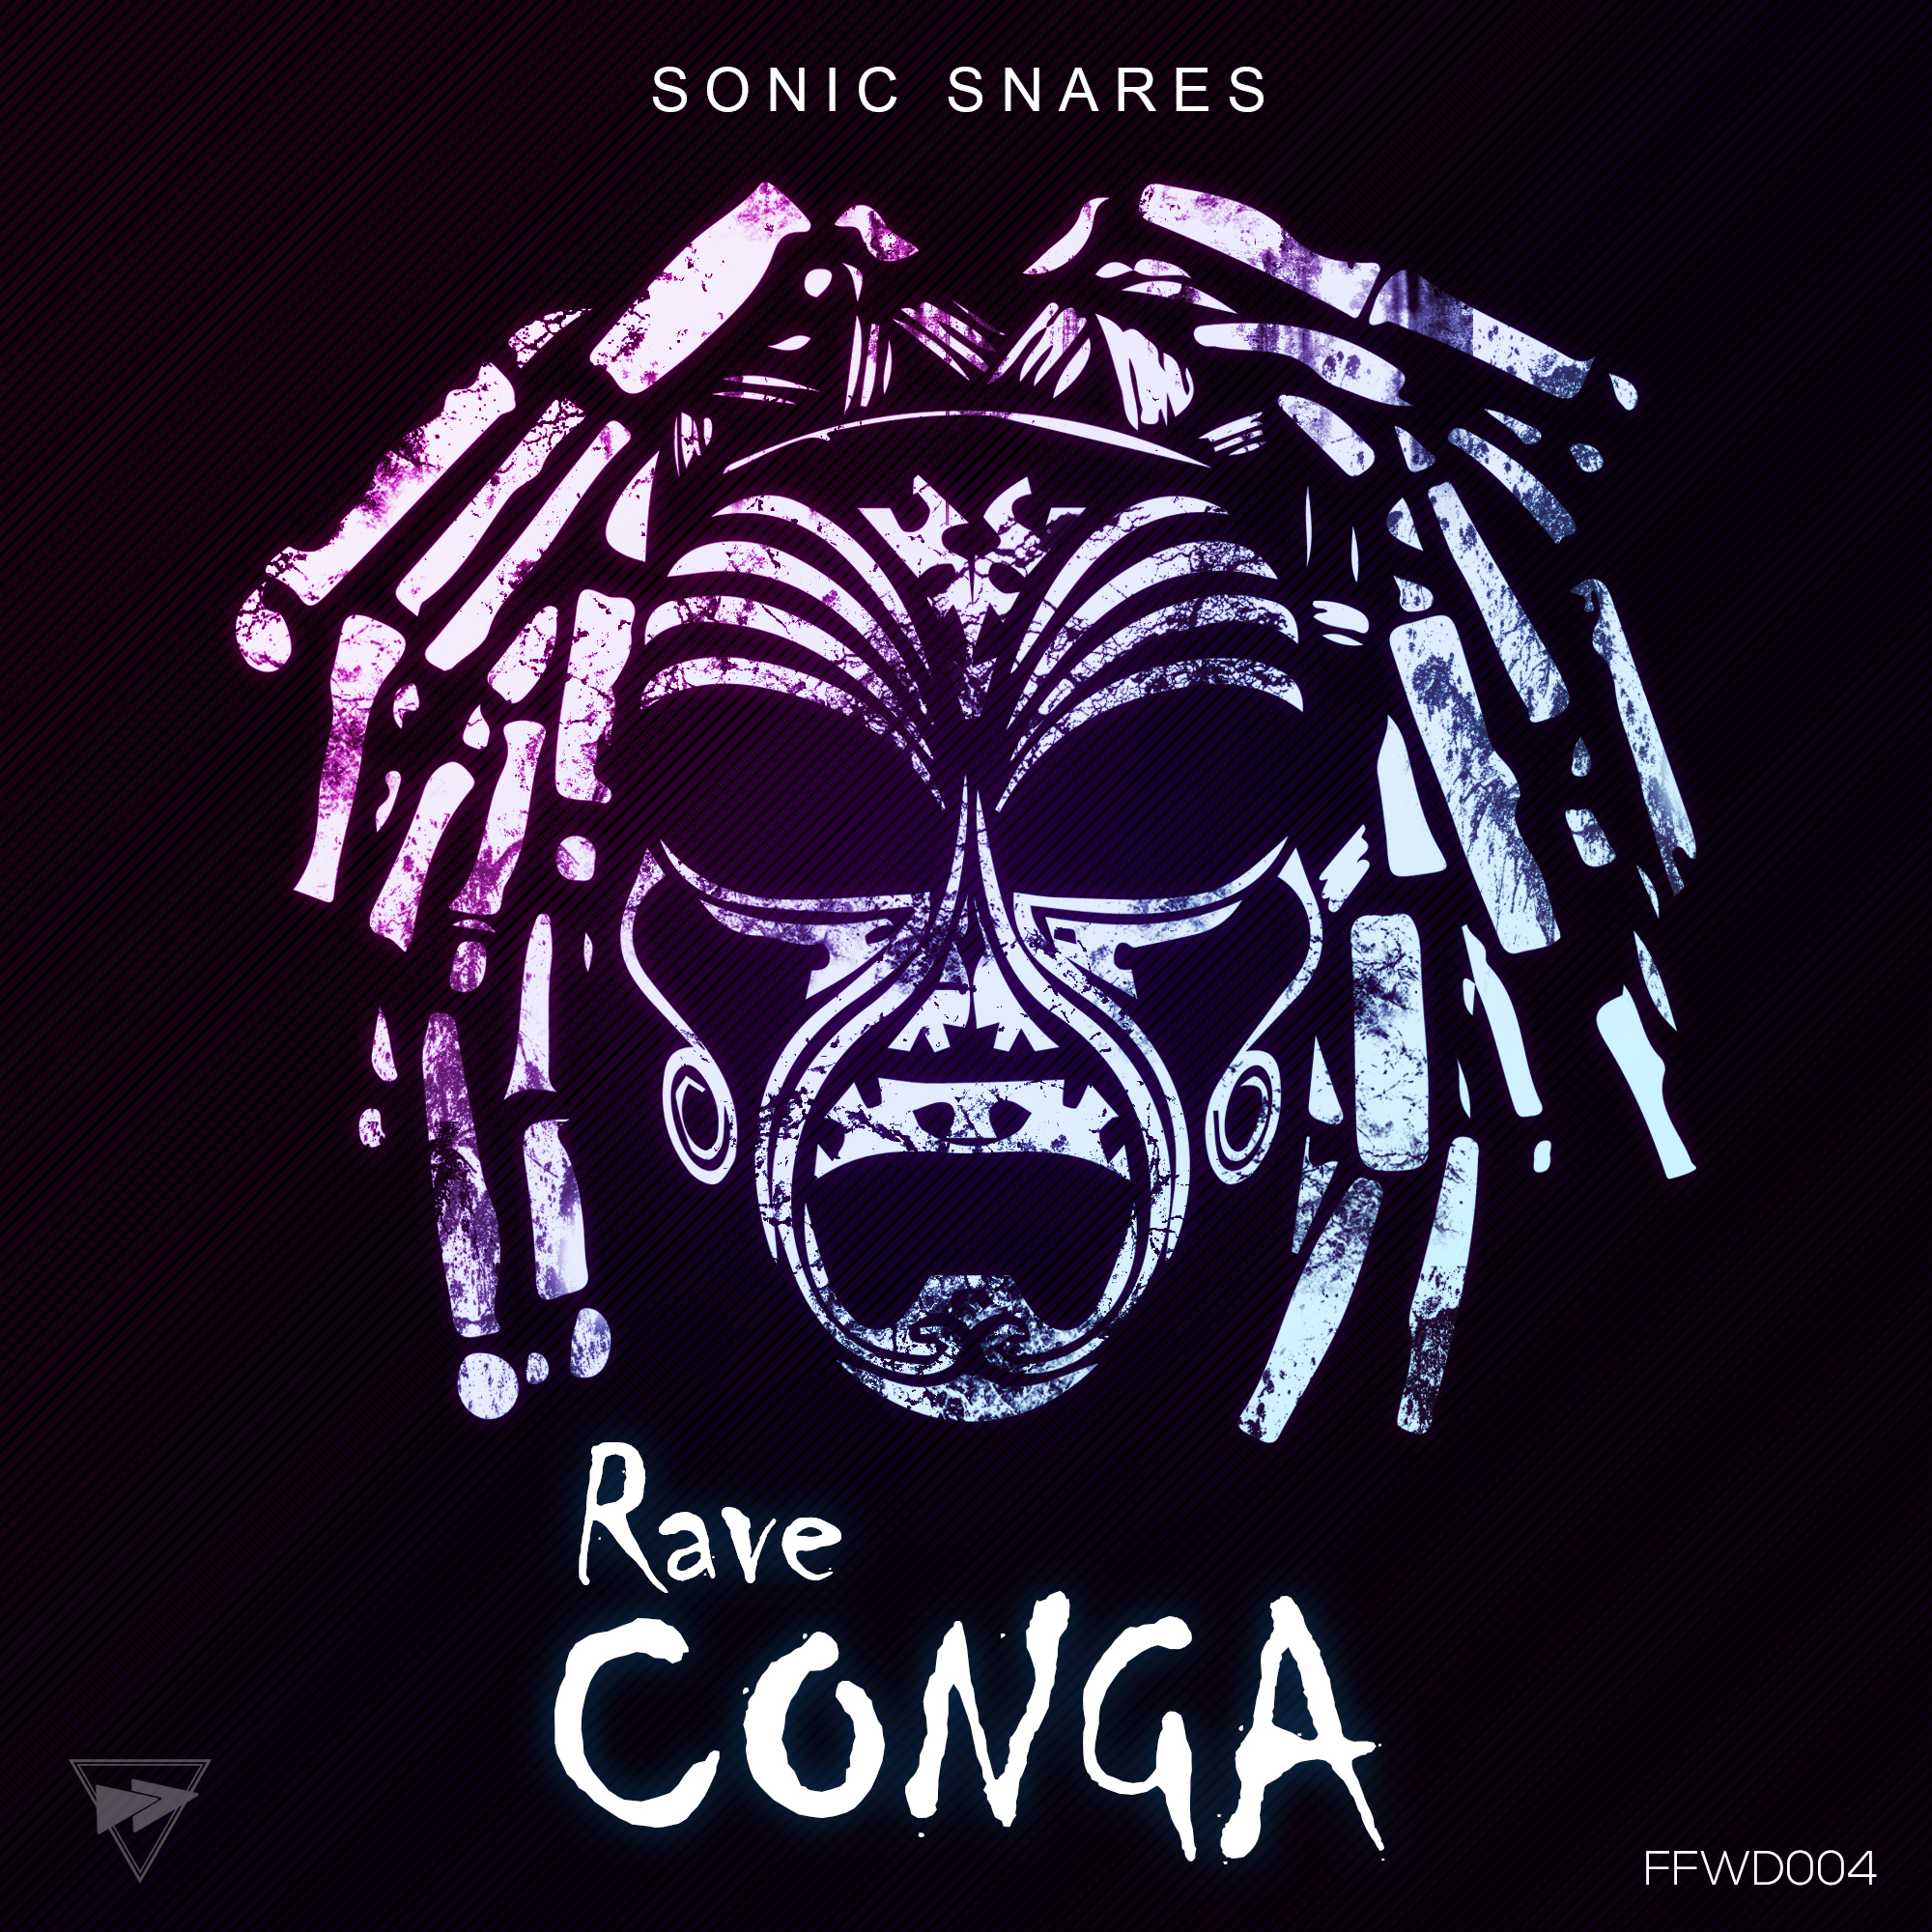 SONIC SNARES-Rave Conga